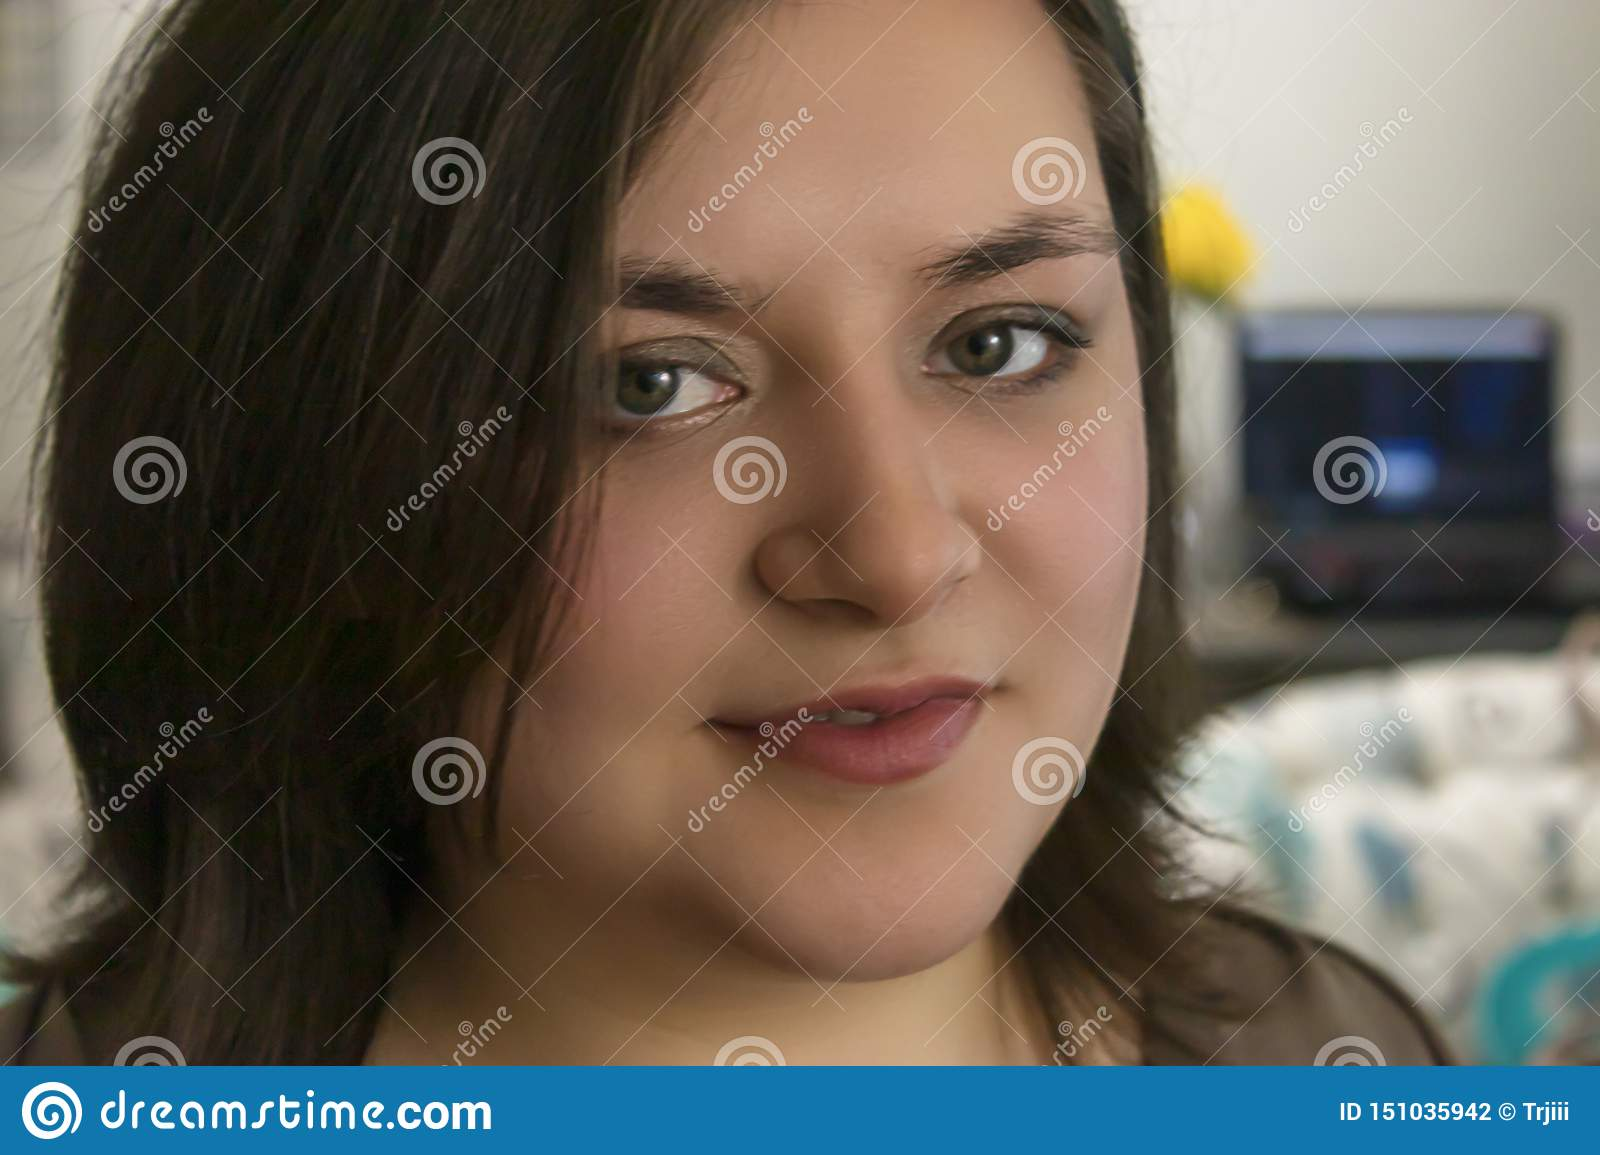 Girl grins softly in home in front of blurred computer